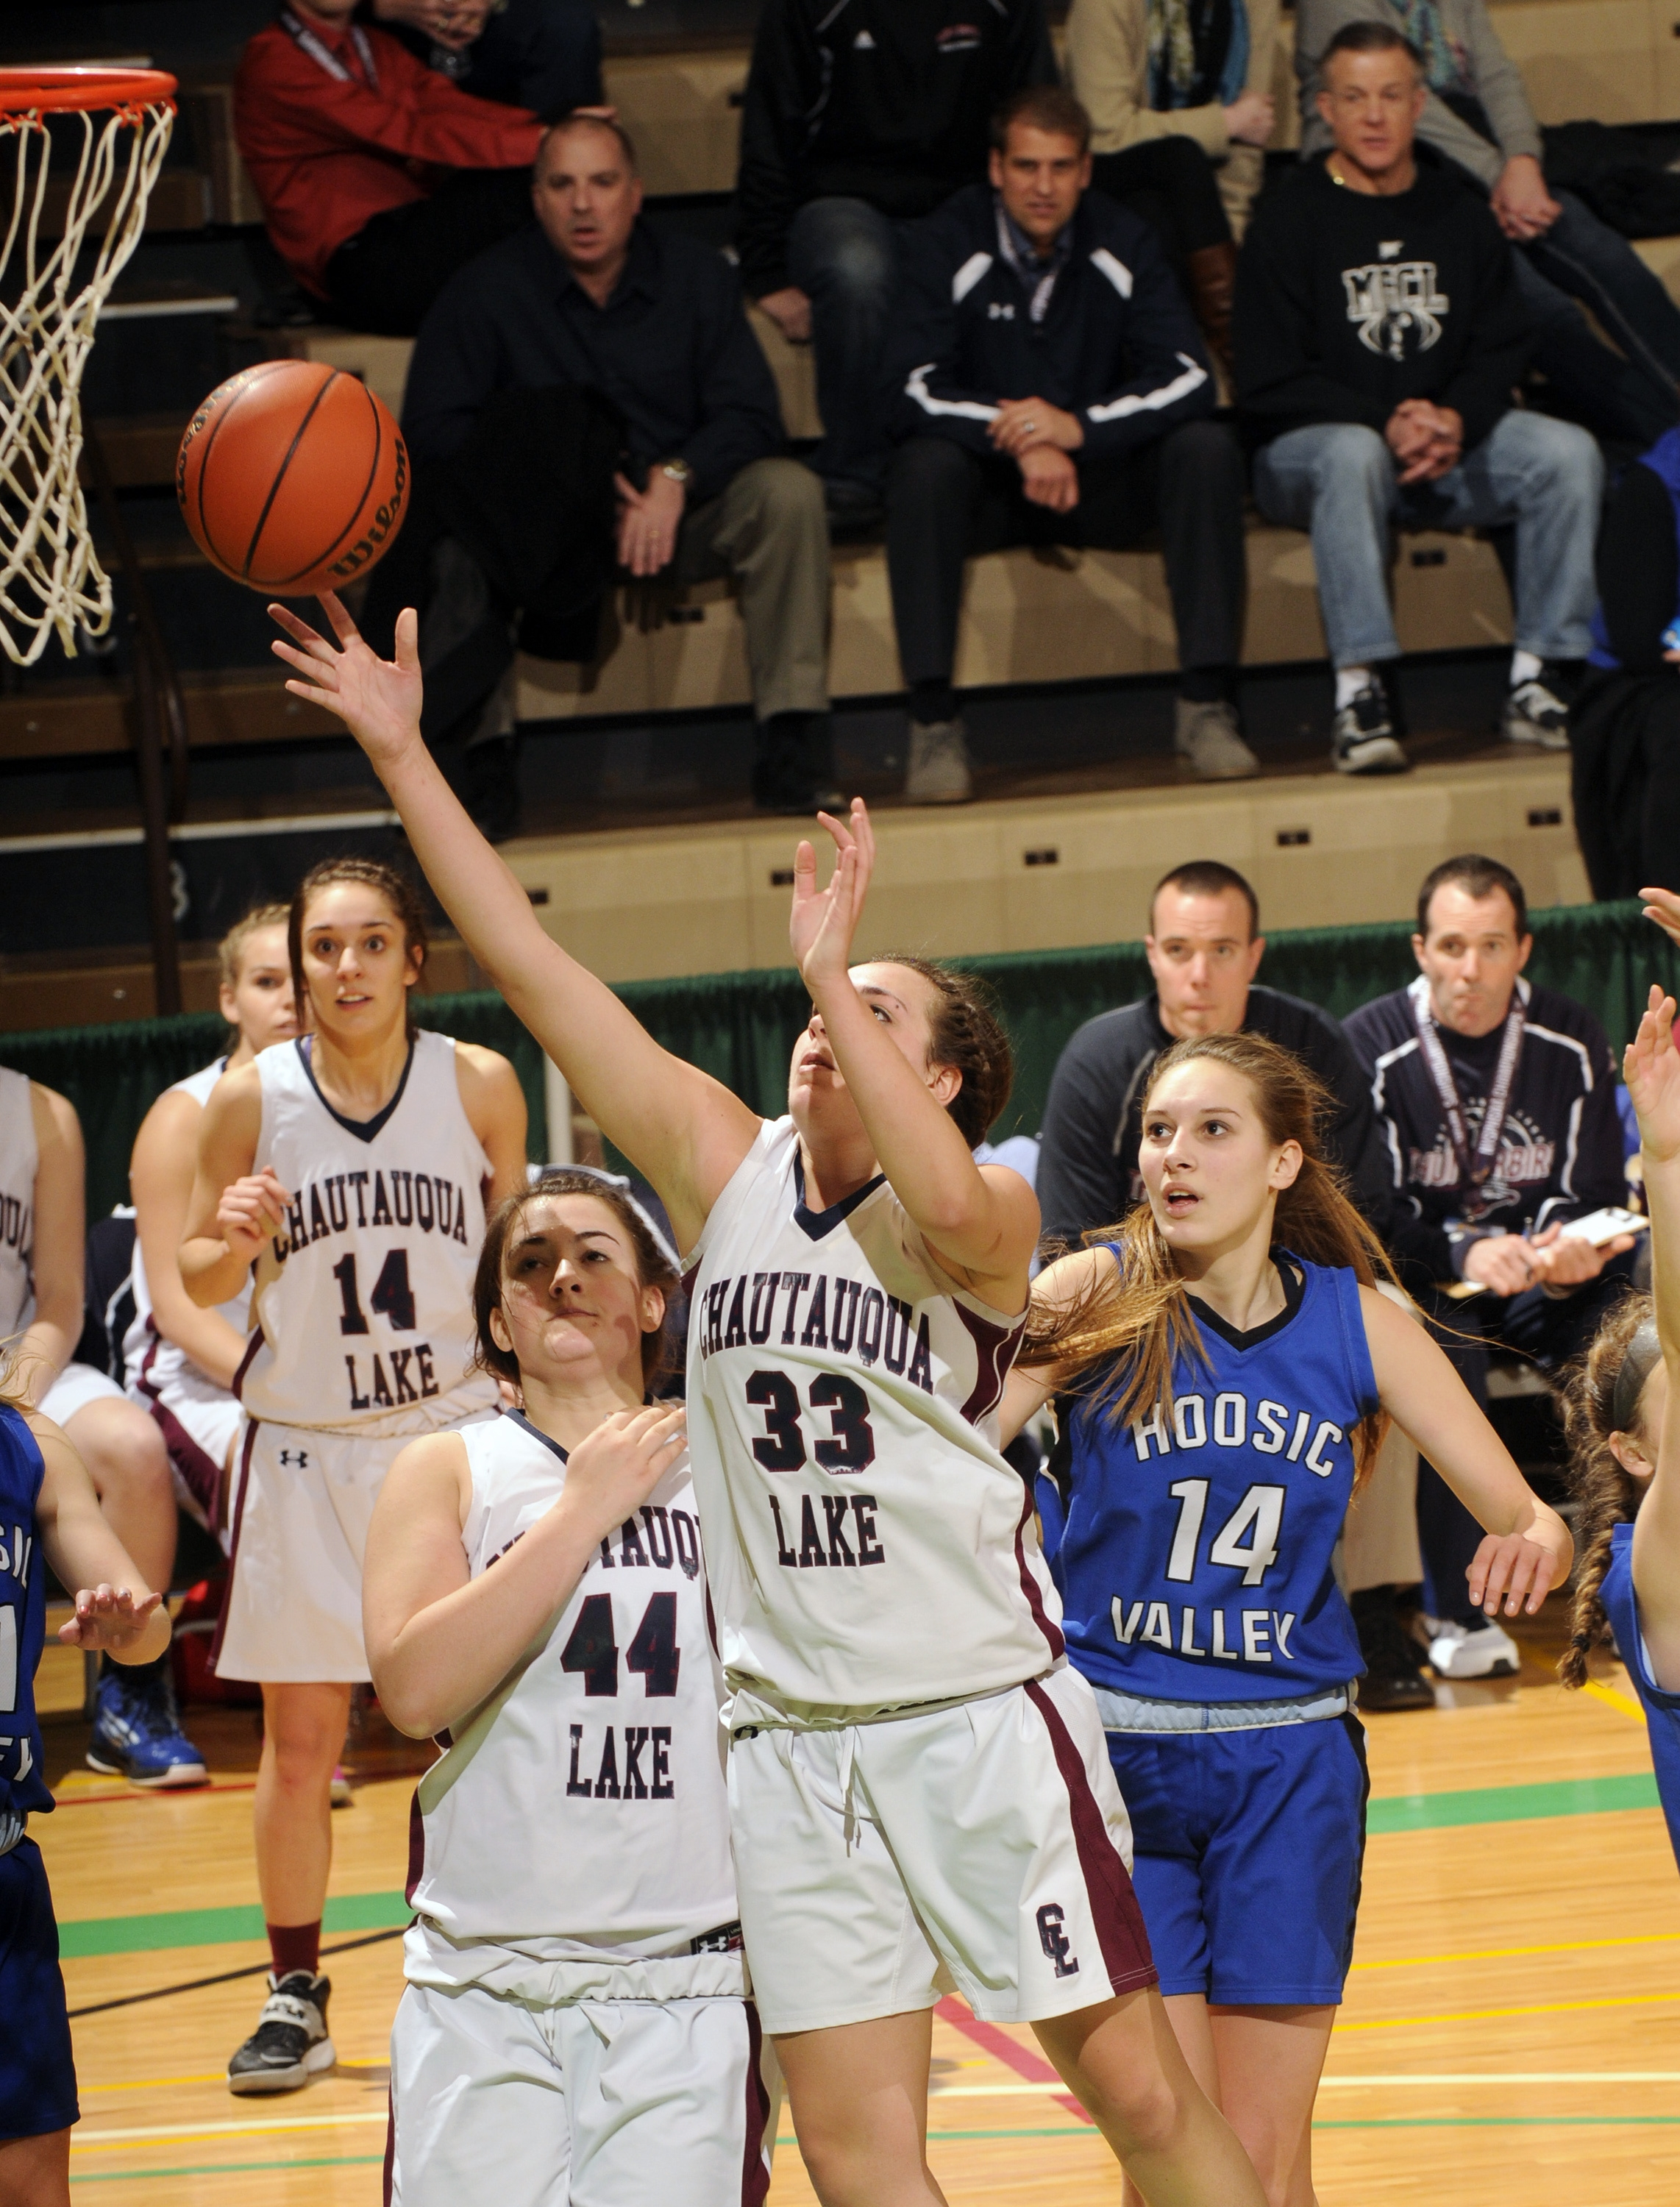 Chautauqua Lake's Jenna Einink puts up two of her 13 points, to go with 14 rebounds, in the Thunderbirds' win over Hoosic Valley.